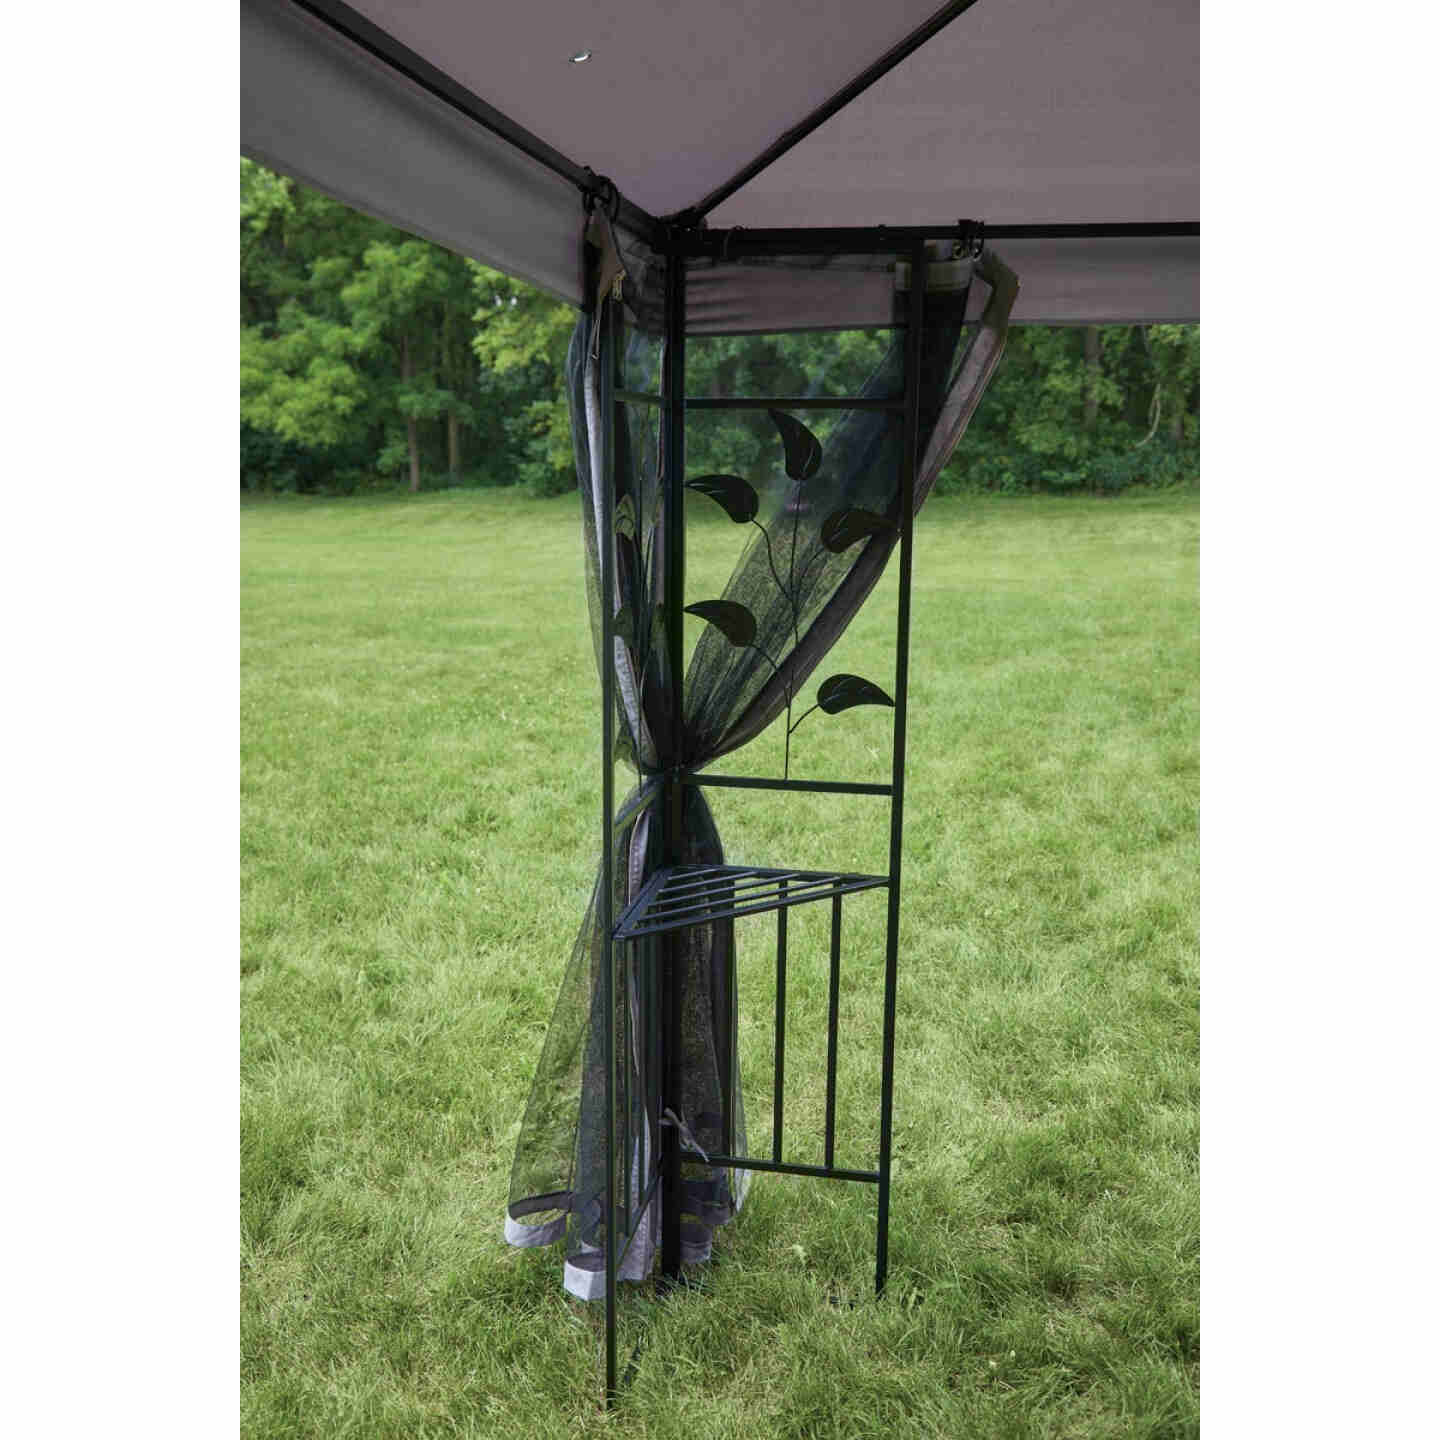 Outdoor Expressions 10 Ft. x 10 Ft. Gray & Black Steel Gazebo with Sides Image 6